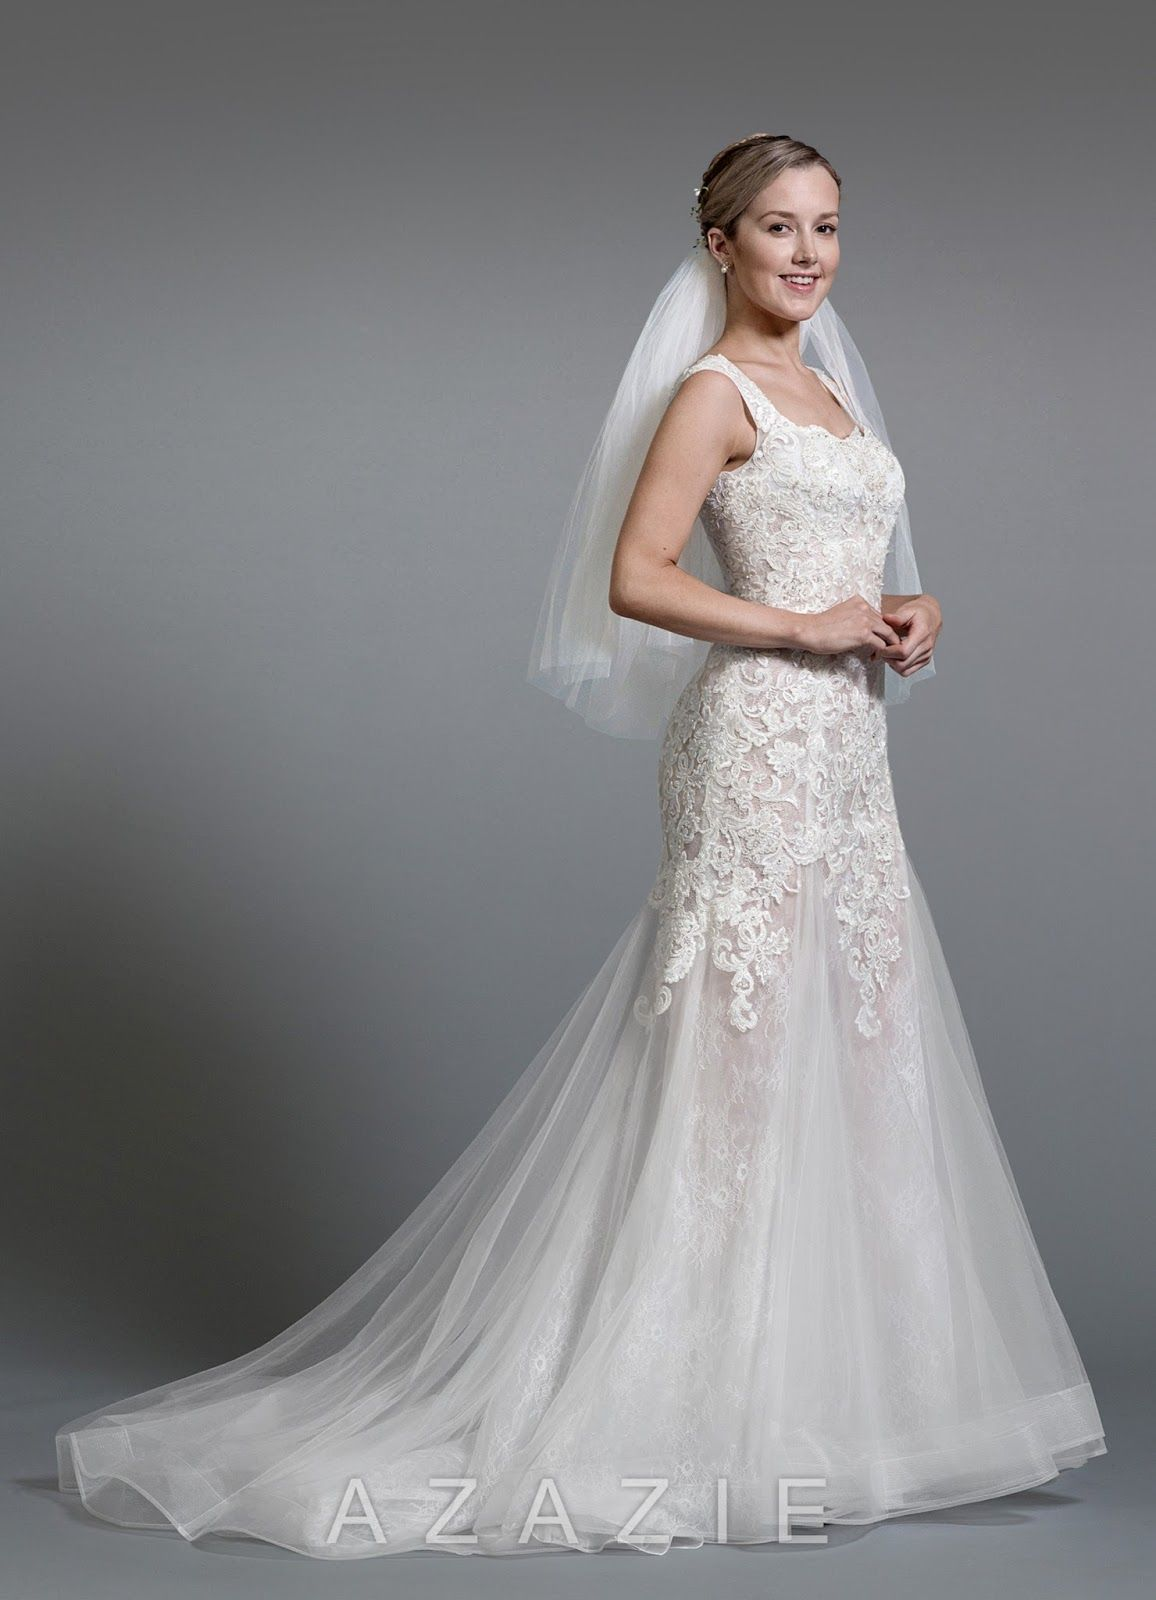 New wedding dress   Beautiful New Wedding Dresses At Azazie For Less Than